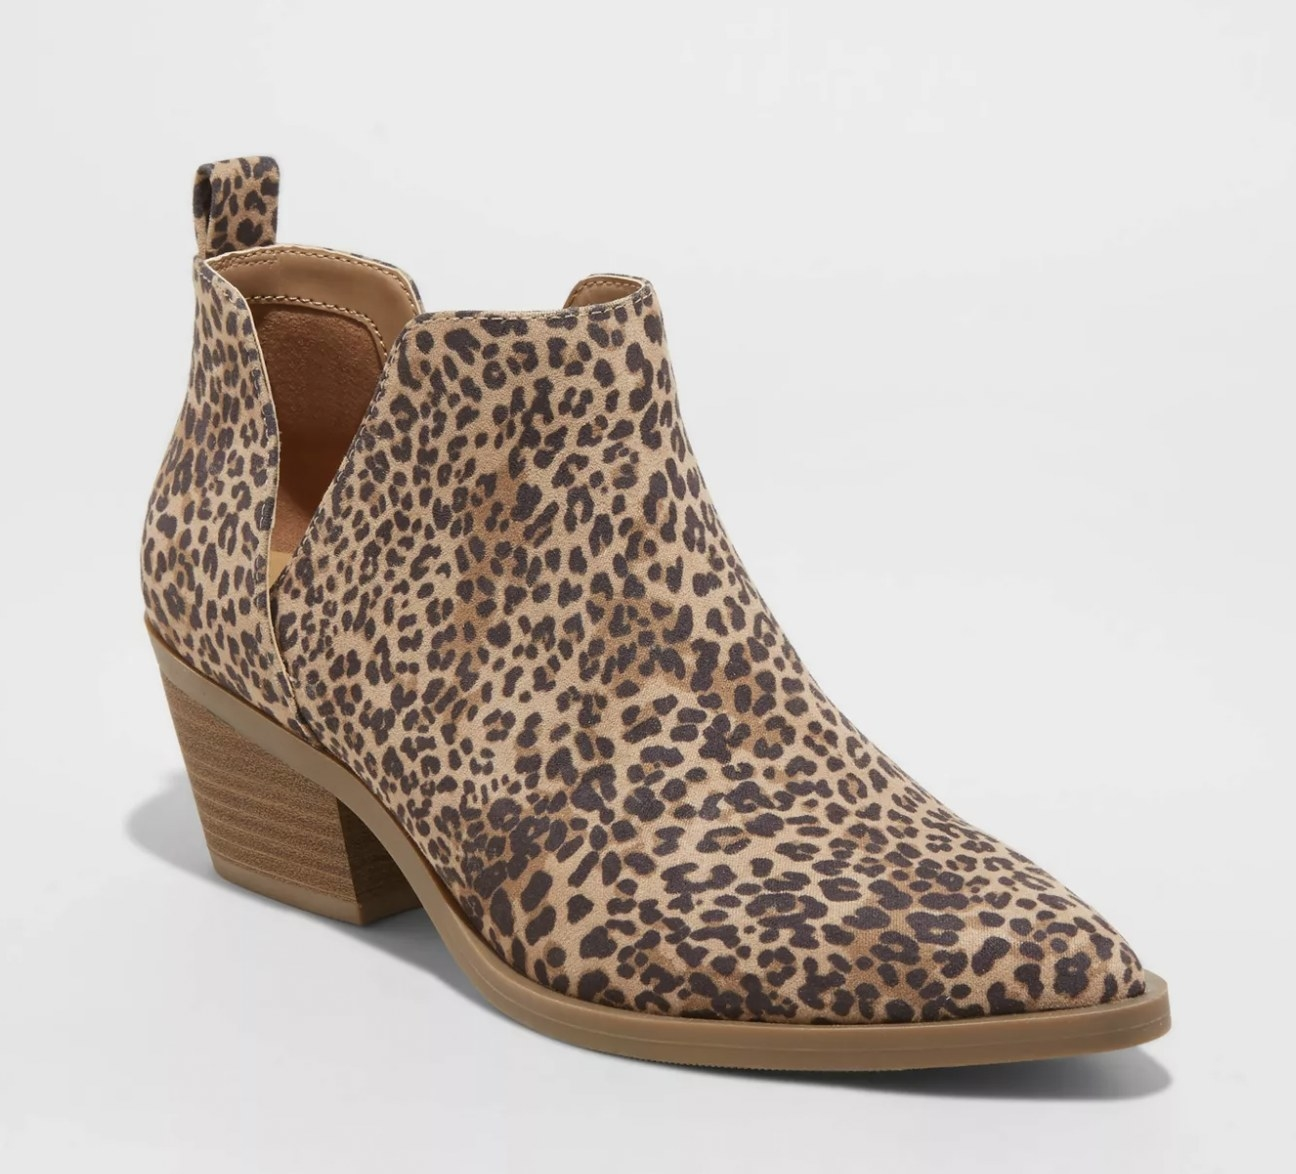 A pair of leopard print boots